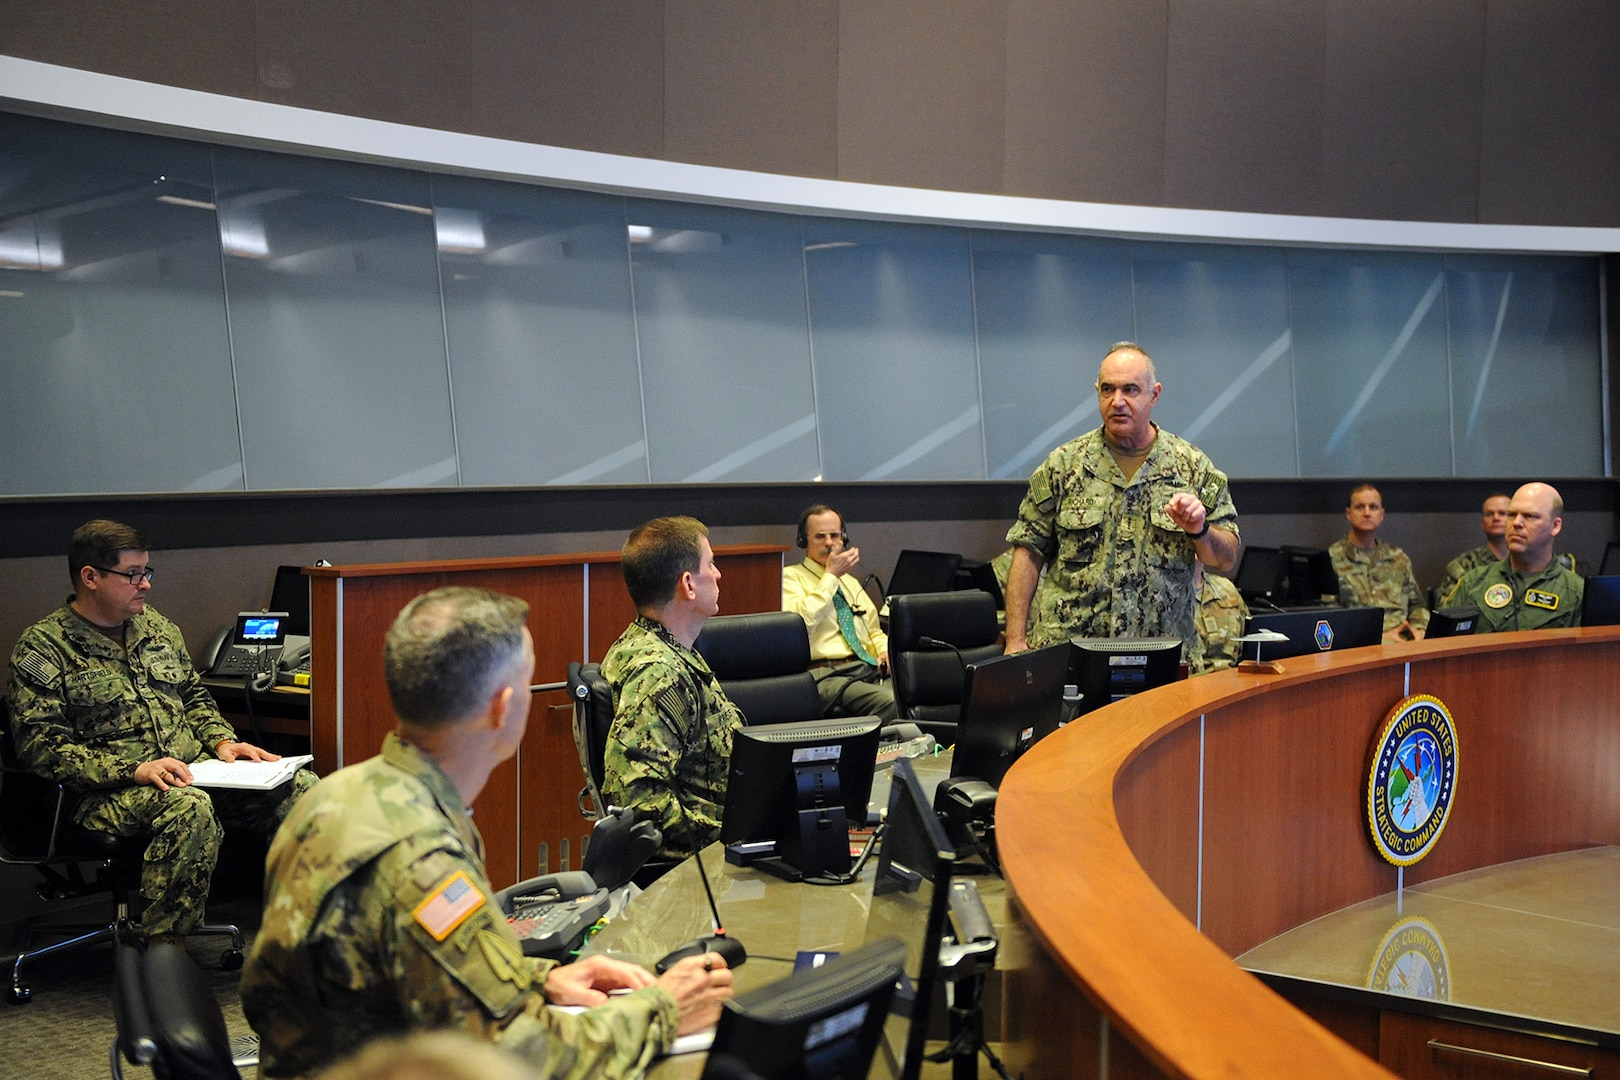 "U.S. Navy Adm. Charles ""Chas"" Richard, commander of U.S. Strategic Command (USSTRATCOM), speaks to his key staff on the battle deck of USSTRATCOM's command and control facility (C2F) during Exercise Global Lightning 20 at Offutt Air Force Base, Neb., Jan. 30, 2020. Global Lightning 20 tested executing global operations in coordination with the Joint Staff, 5 other combatant commands, services, U.S. government agencies, and allies to deter, detect and, if necessary, defeat strategic attacks against the United States and its allies. This is the first major exercise USSTRATCOM conducted entirely from the C2F, the command's newest weapon system that enables it to connect to national leadership, all three legs of the triad, and other platforms key to executing operations."